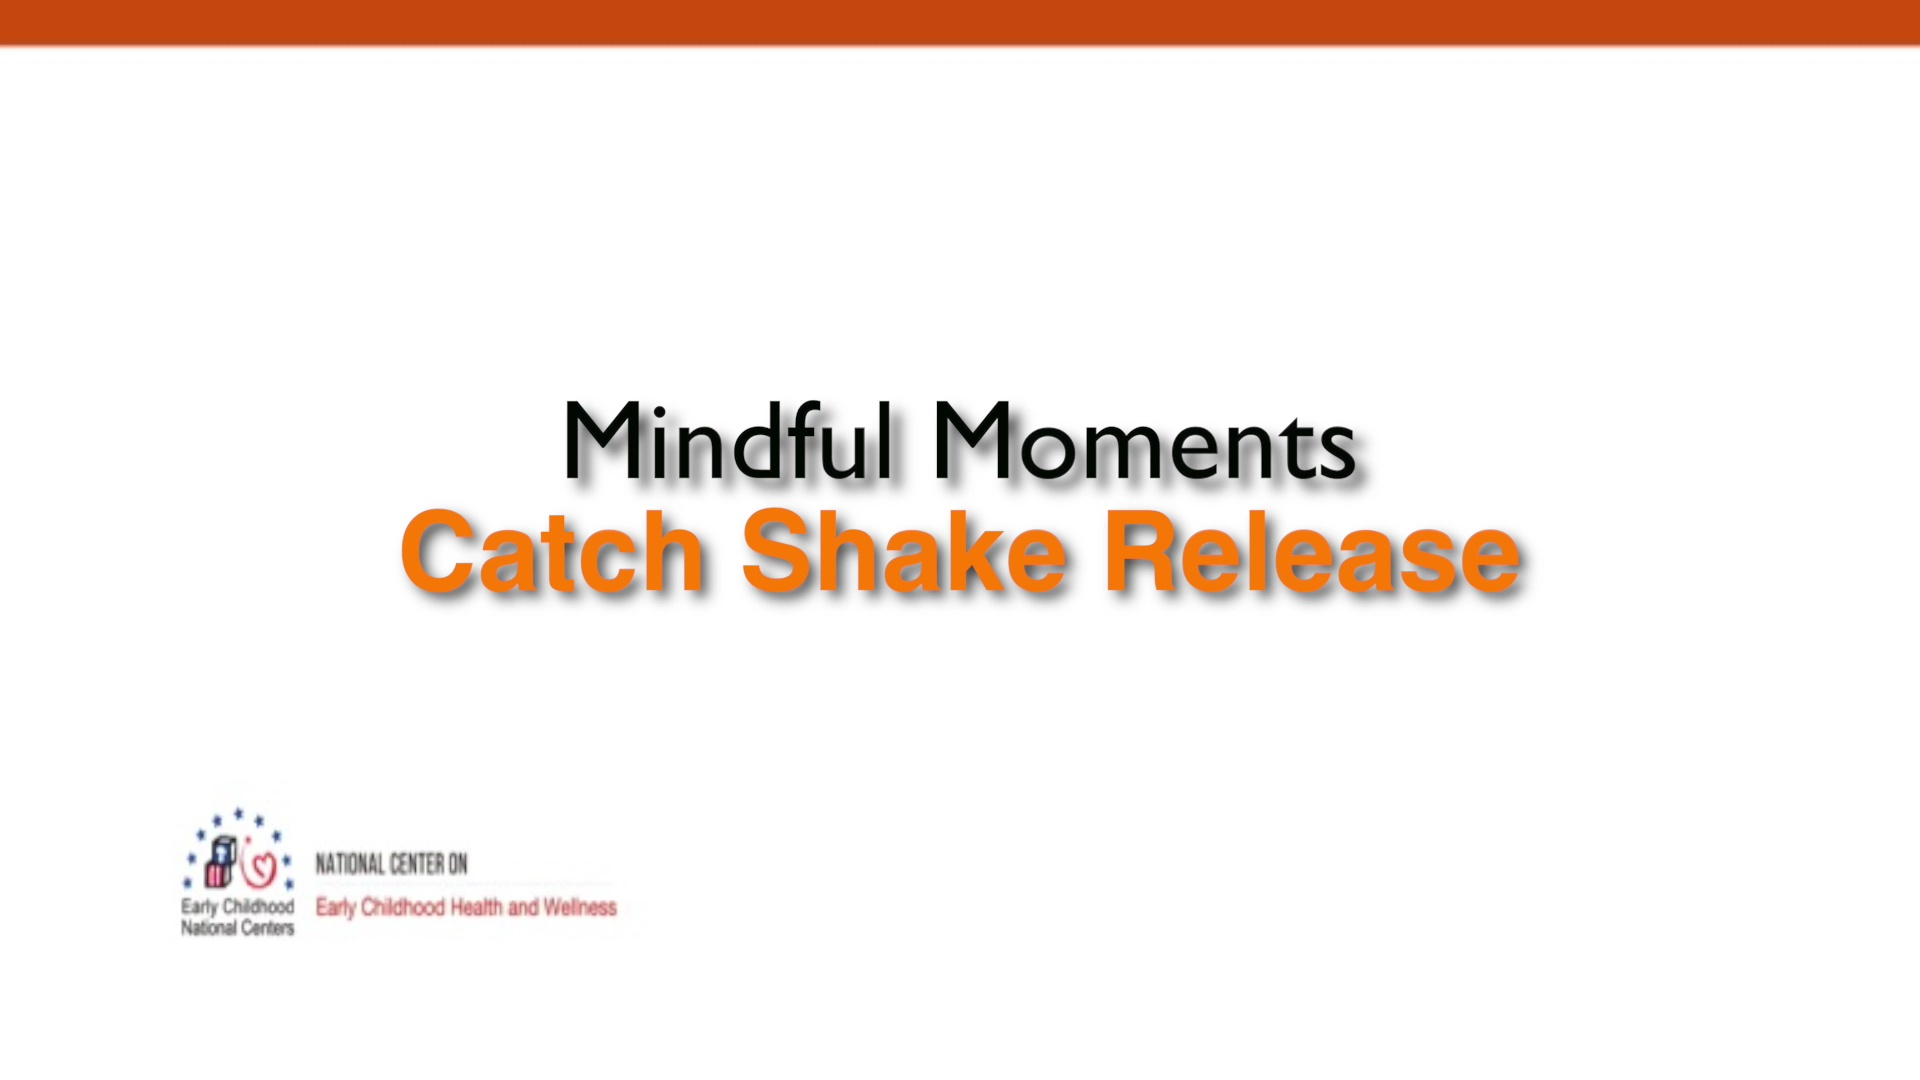 Catch Shake Release